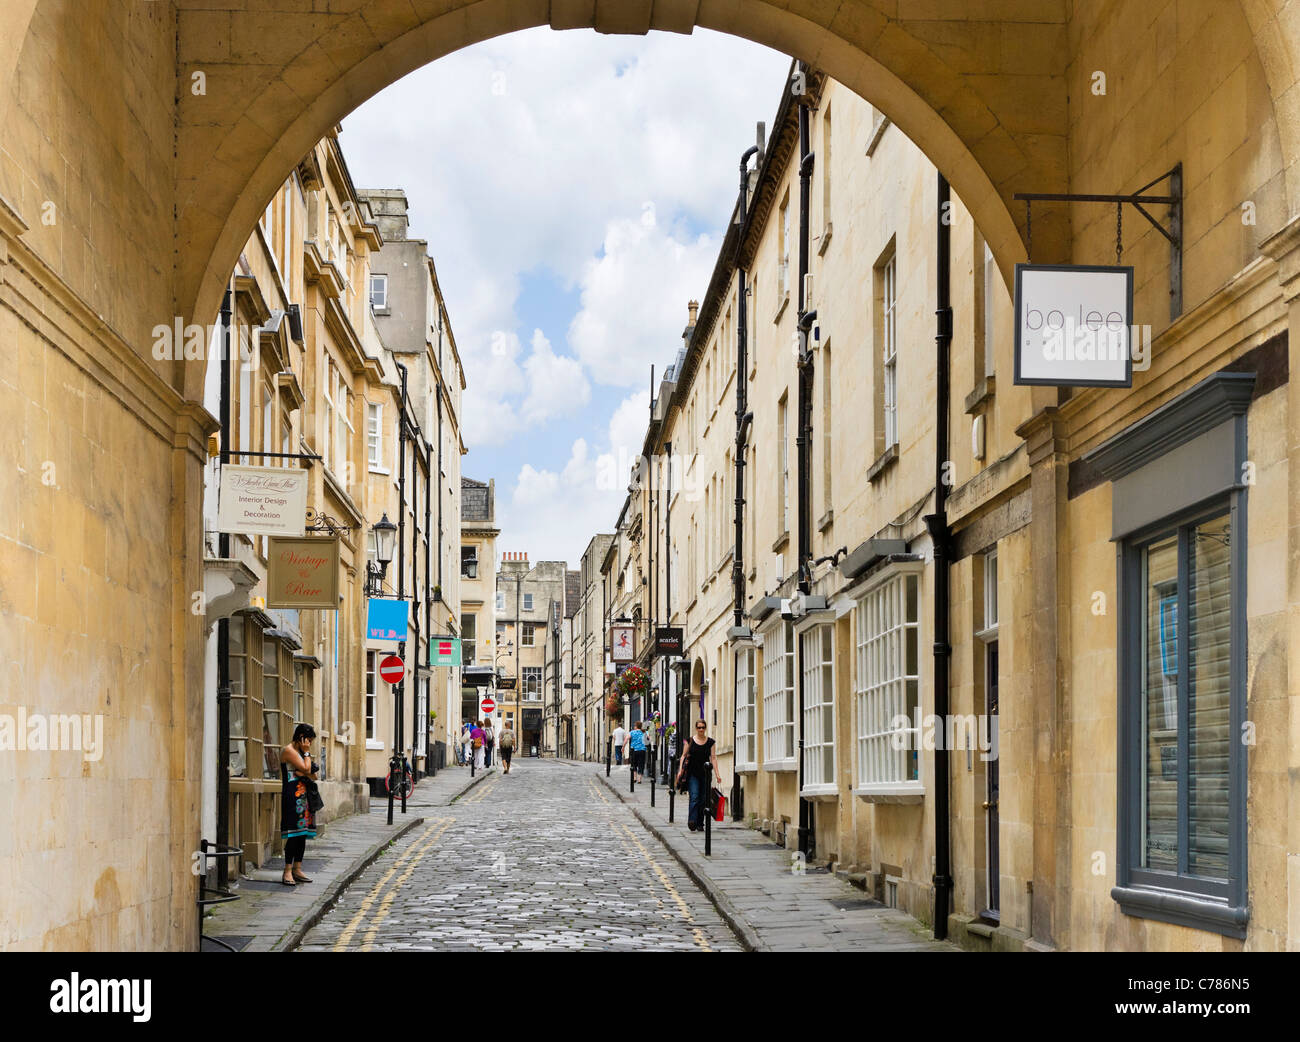 Queen Street near the old town, Bath, Somerset, England, UK - Stock Image